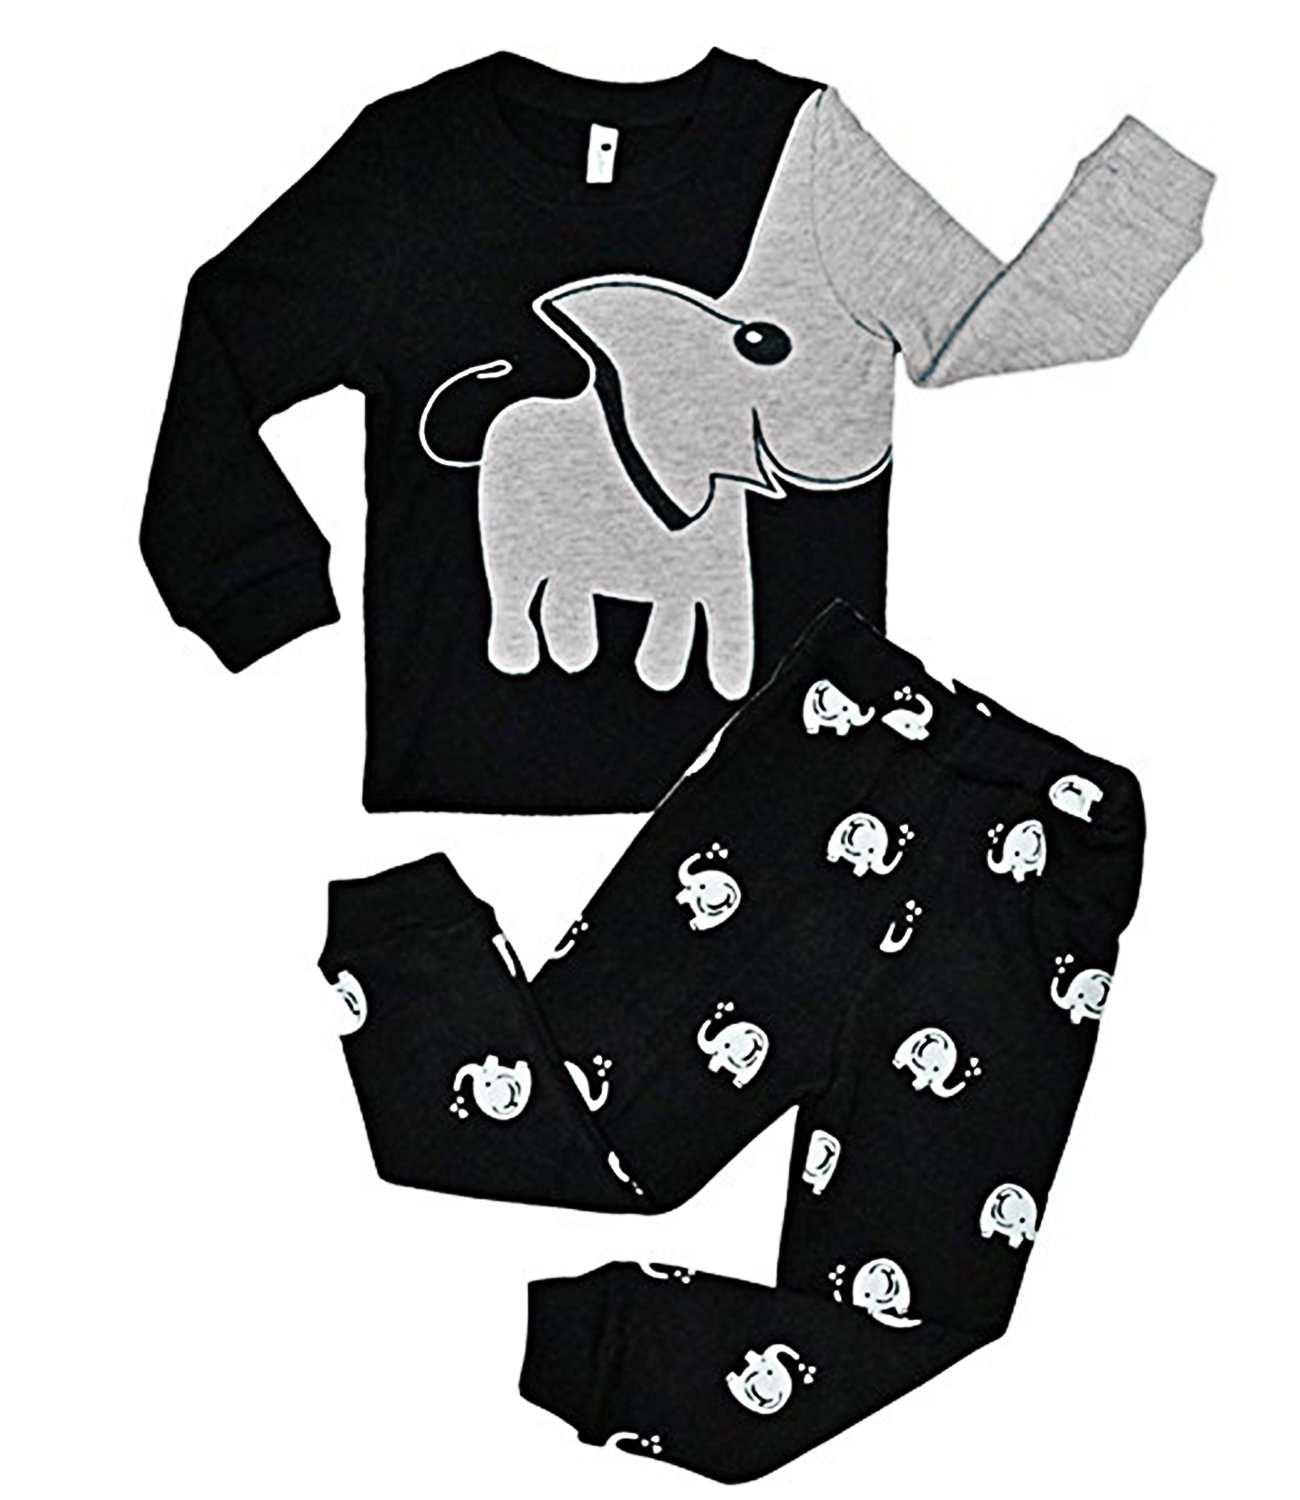 Boys Pajamas Elephant 2 Piece Kids Pjs Sets 100% Cotton Toddler Sleepwears, Black, Size 7